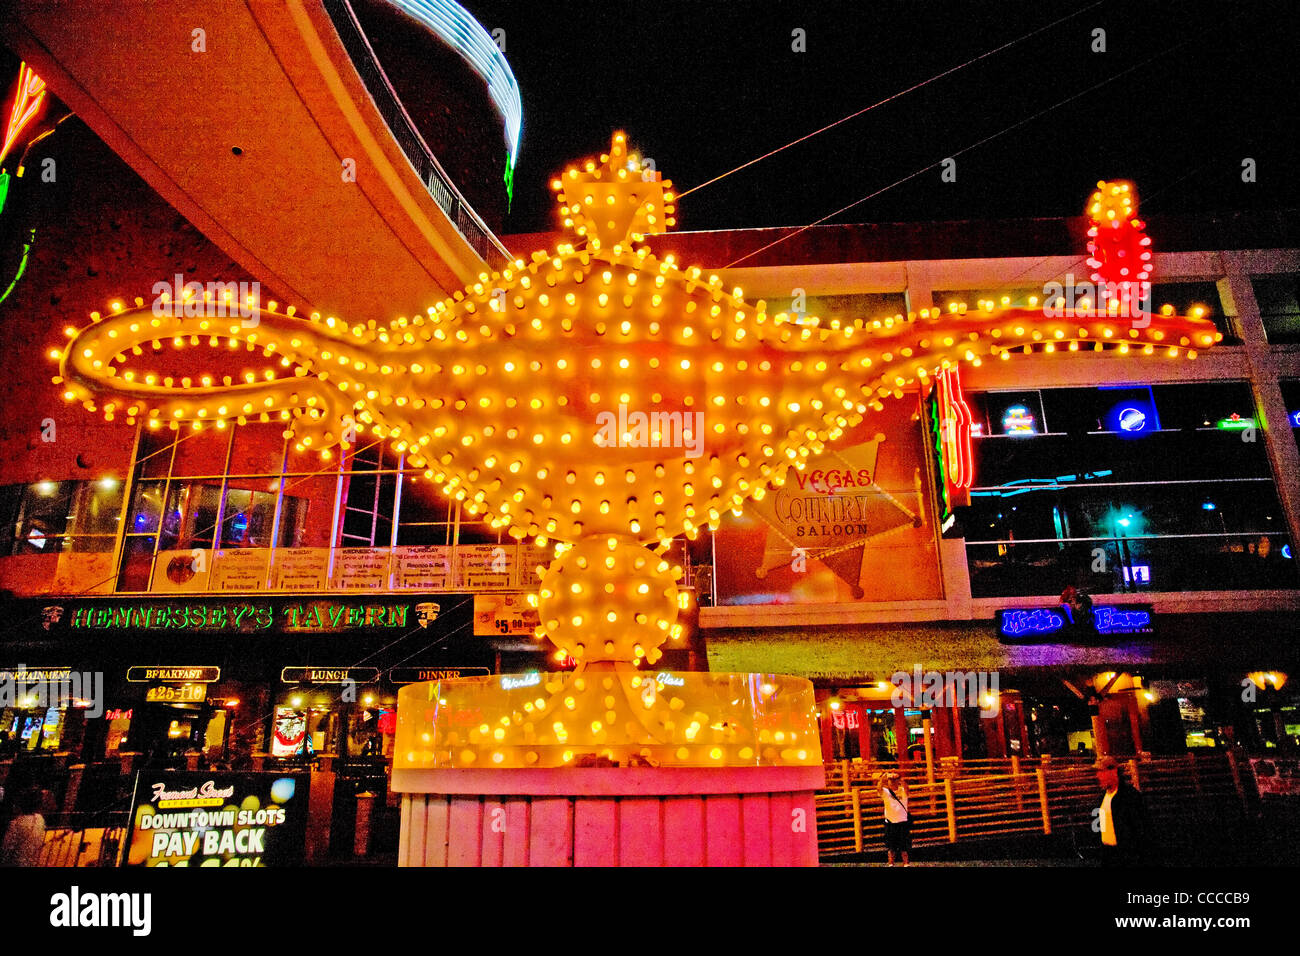 Aladdin's lamp sign decorates Fremont Street in Las Vegas, NV, as part of the 'Fremont Street Experience'. - Stock Image